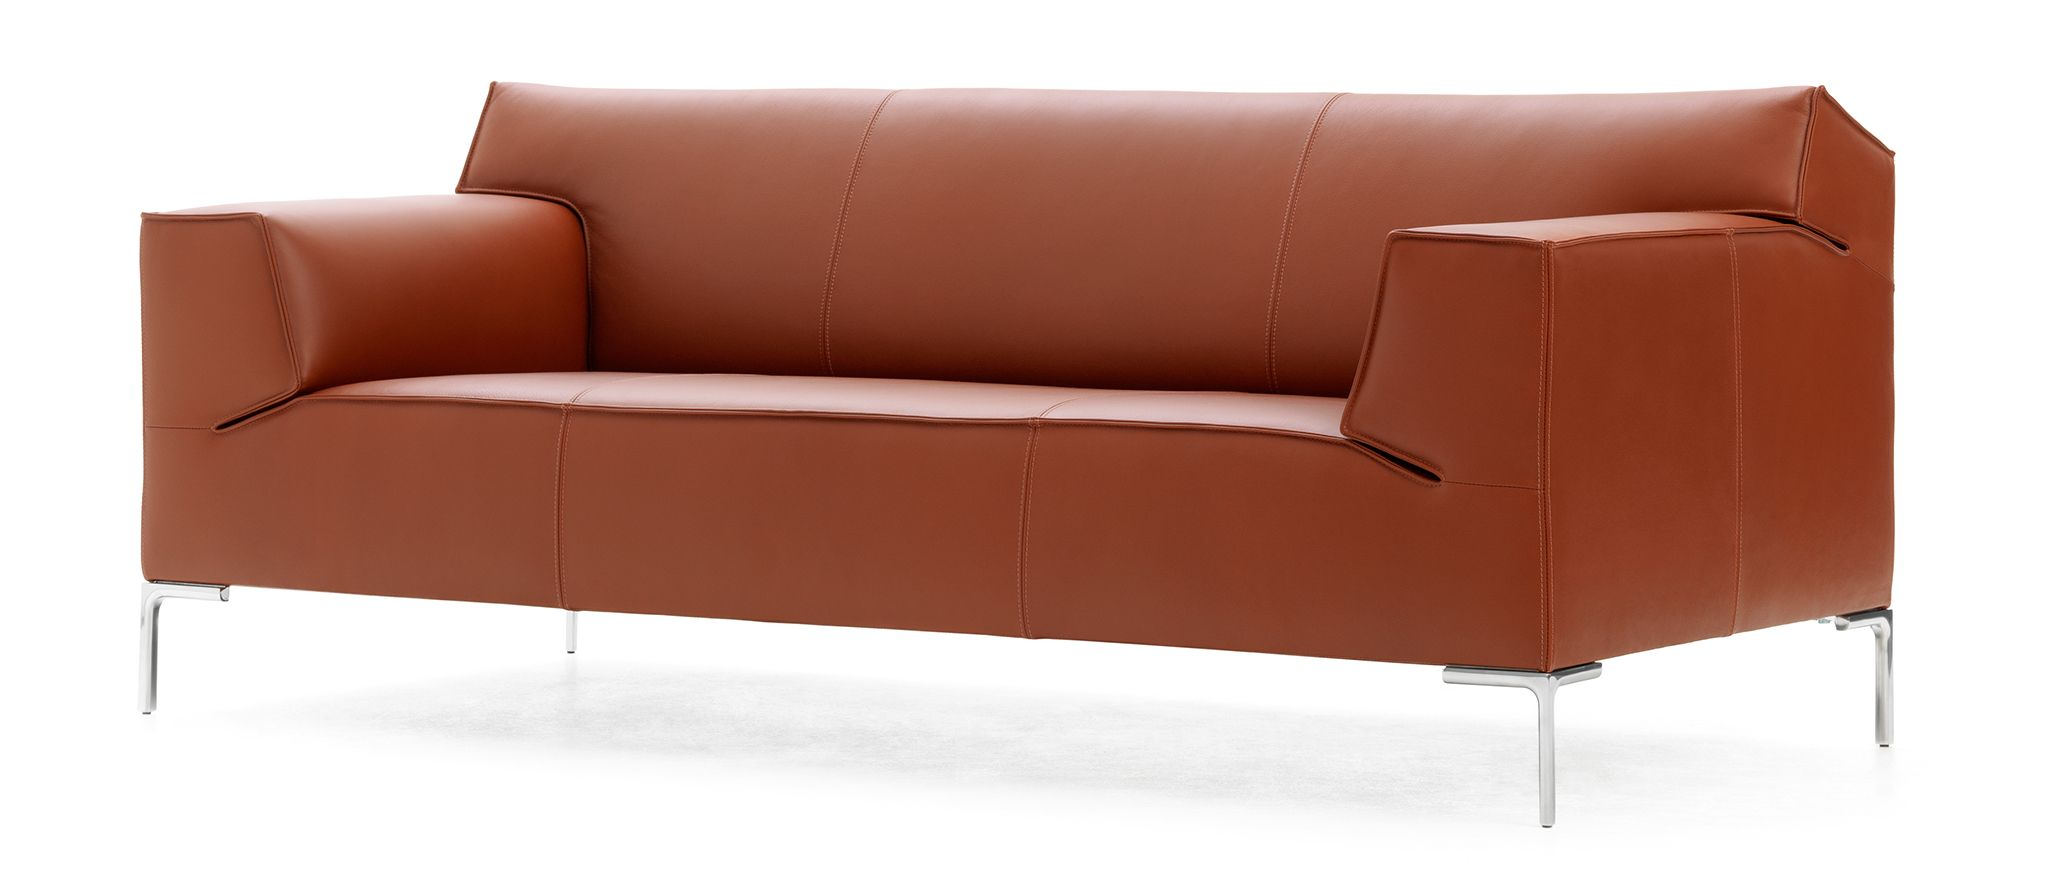 Two Tone Contemporary Style Sleek Quality Full Leather Couch